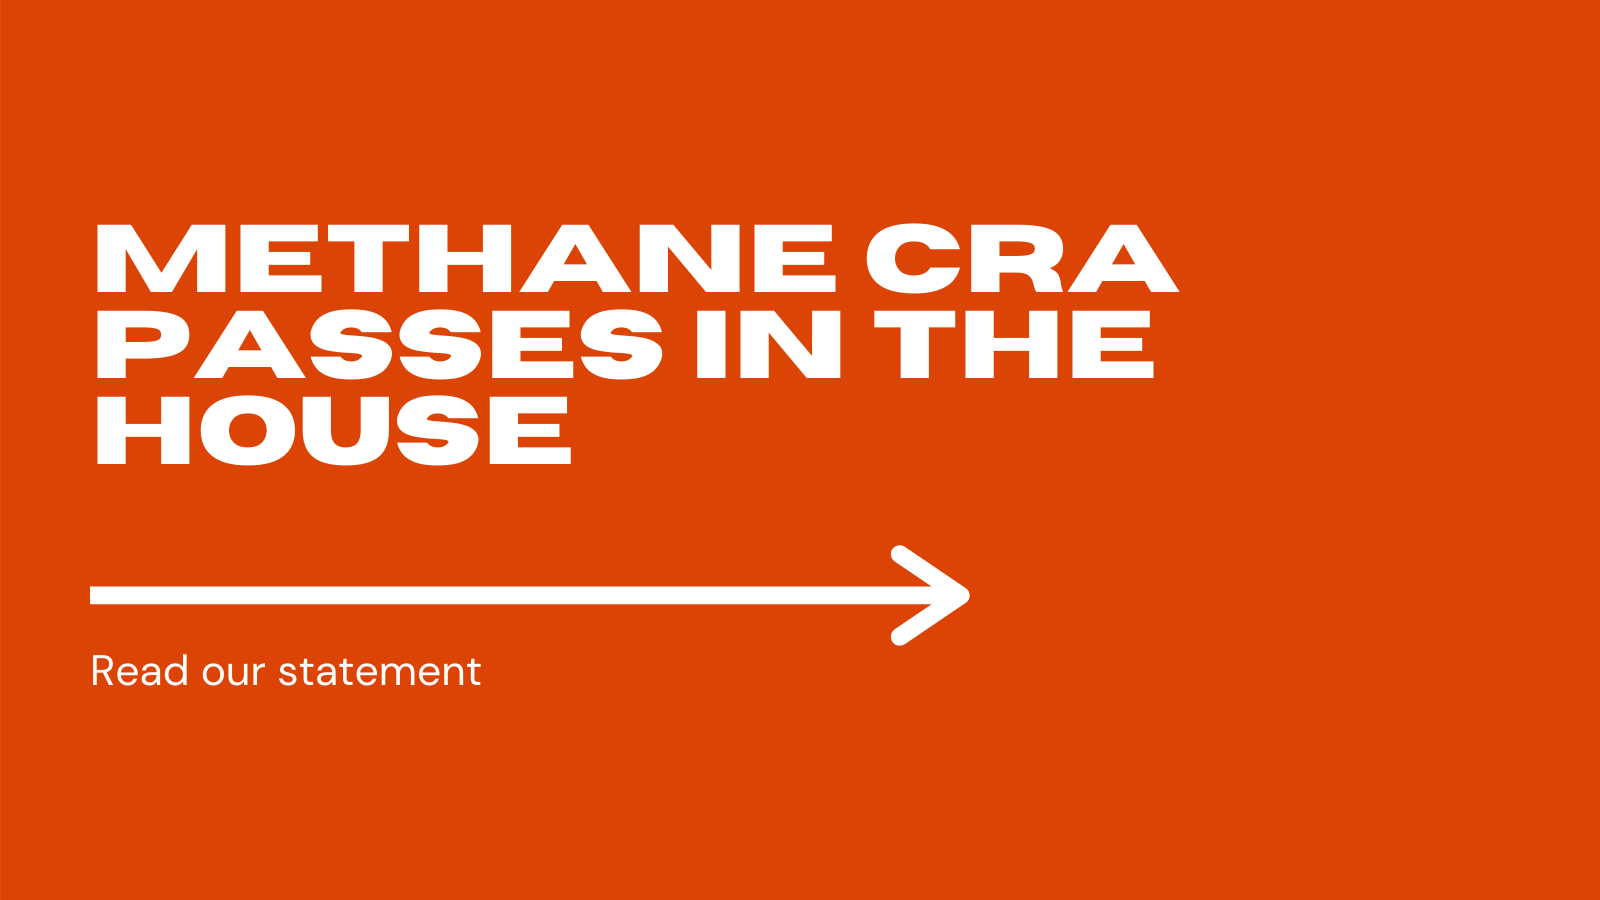 YECA Applauds the Passage of the Methane Congressional Review Act